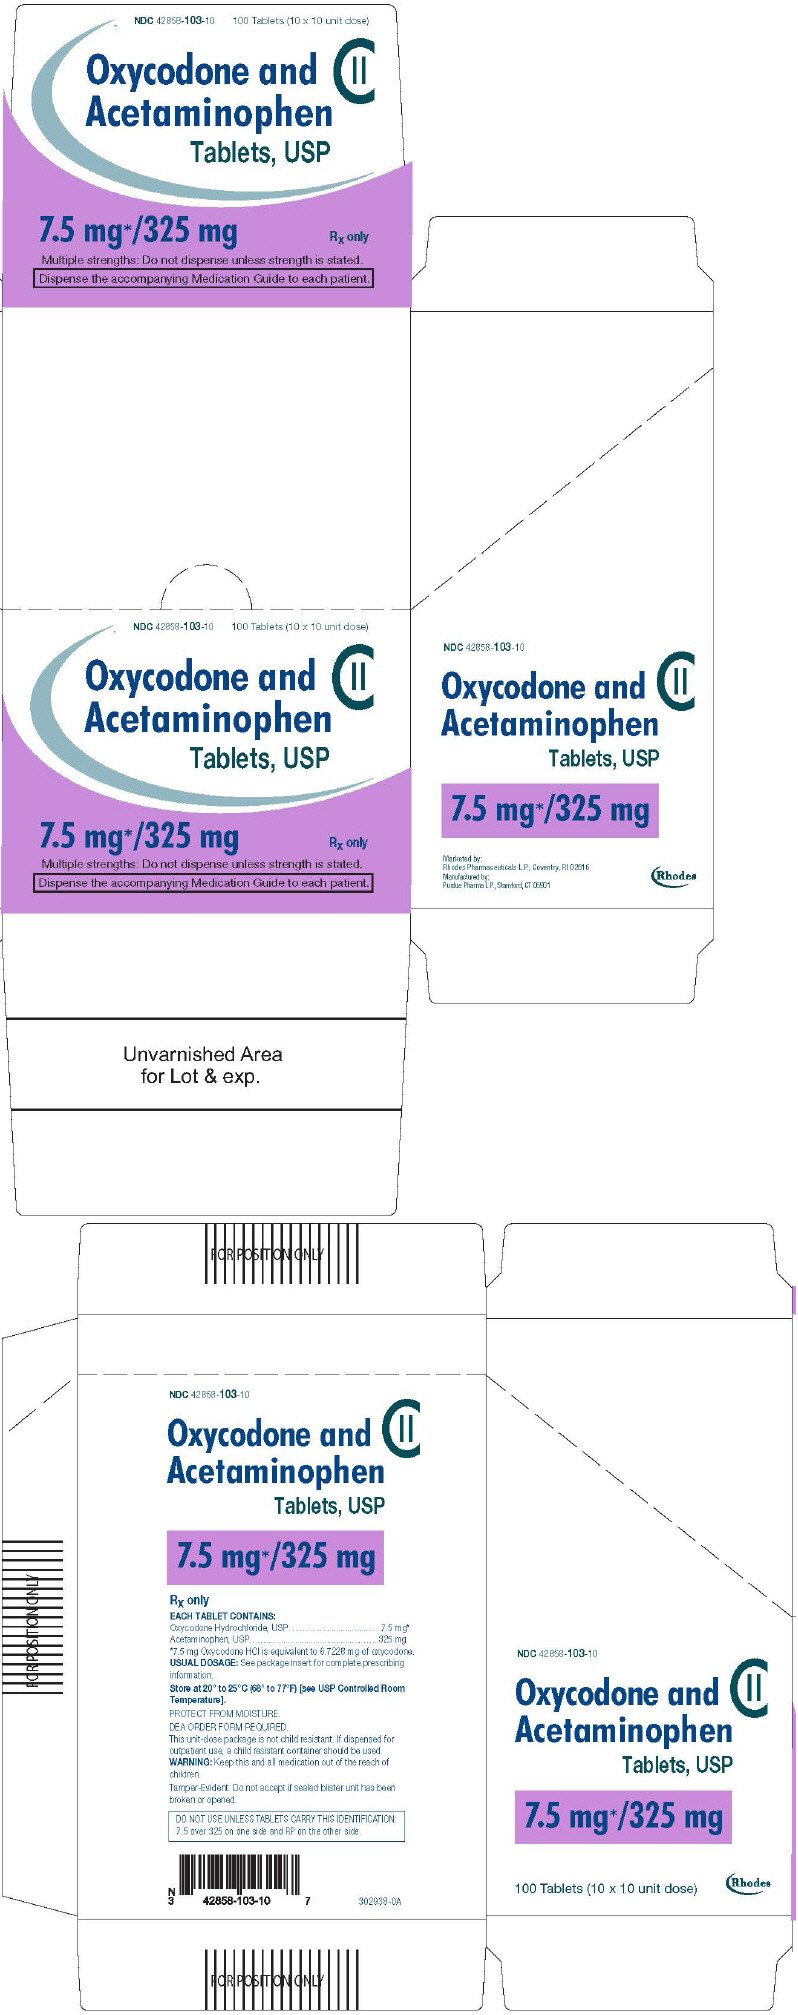 PRINCIPAL DISPLAY PANEL - 7.5 mg/325 mg Tablet Blister Pack Carton